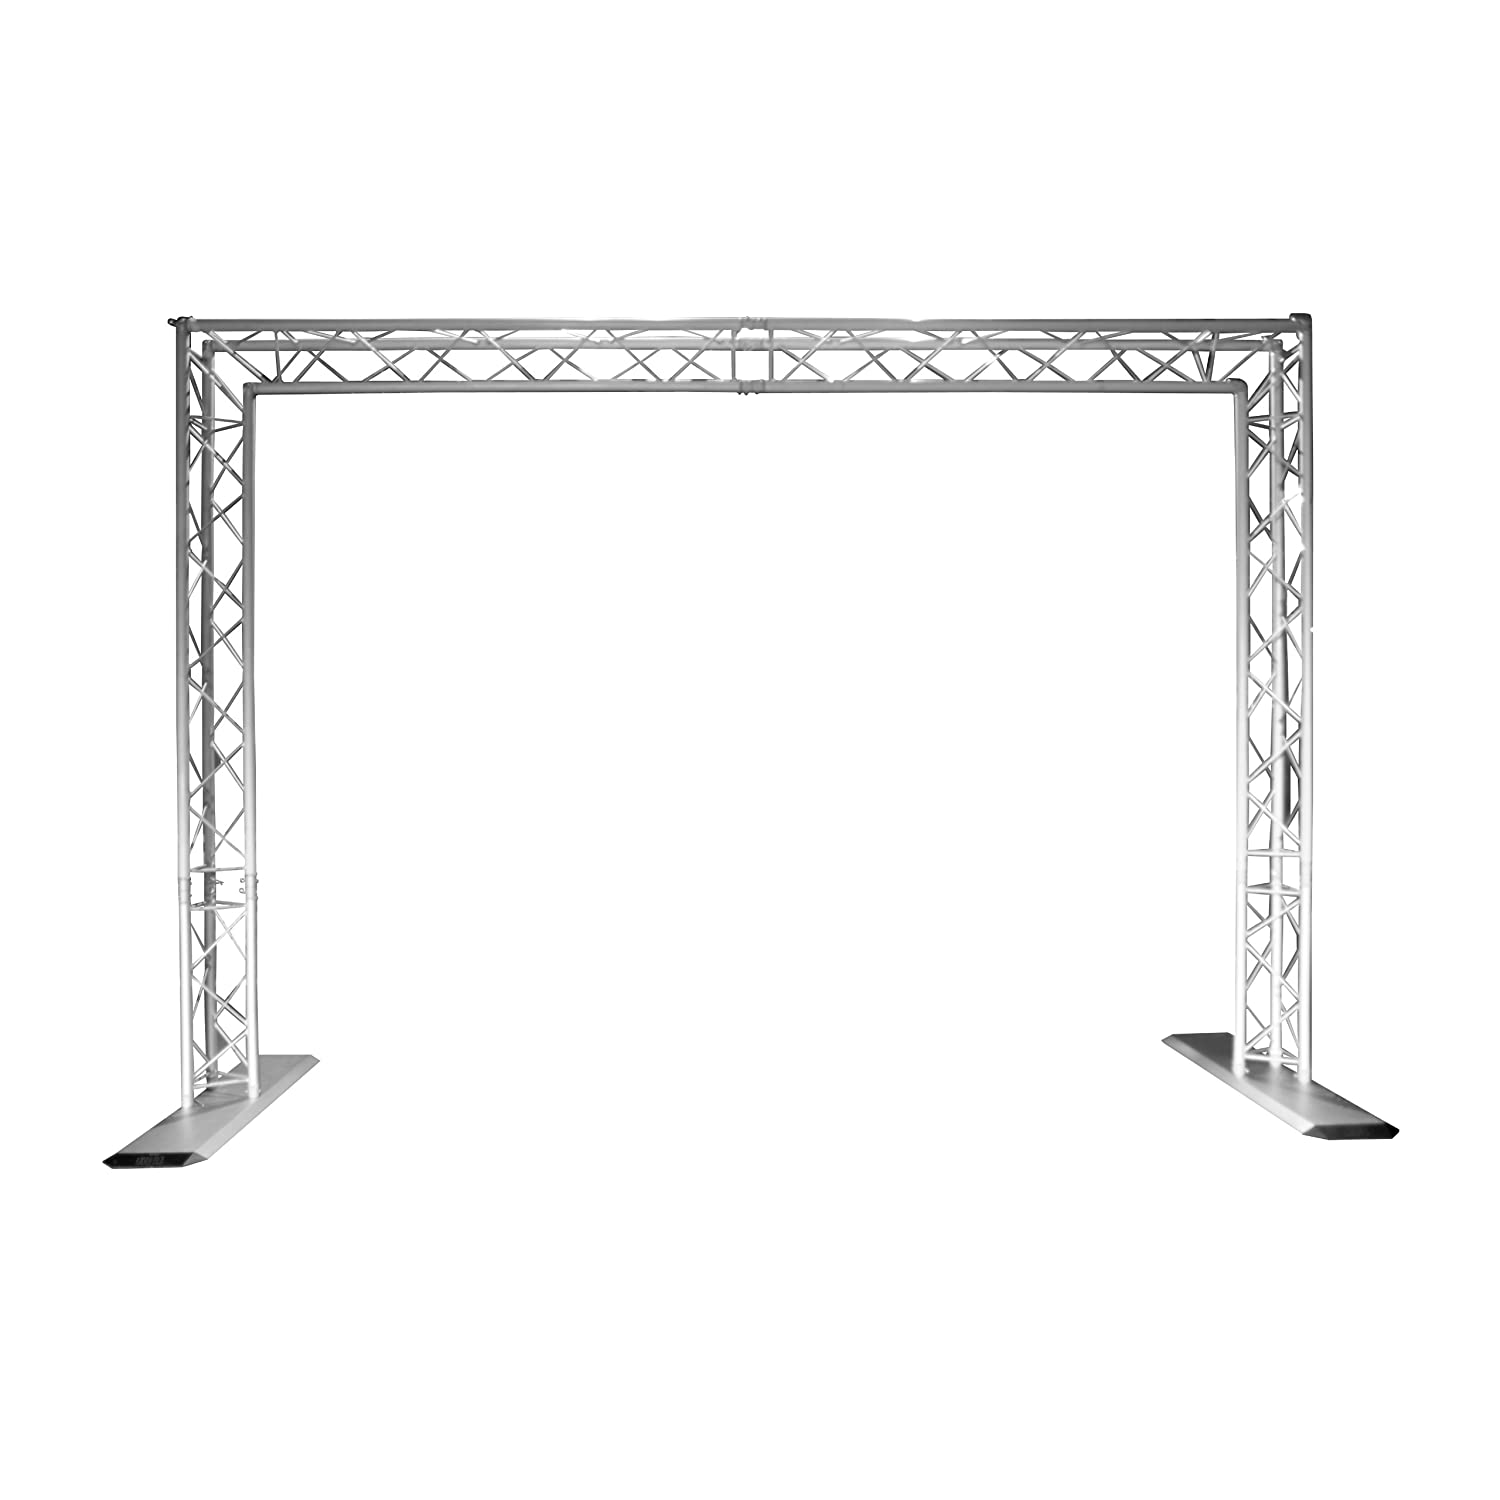 in light truss curves a lighting plates moving on nice deck banqueting images avenue london as barmitzvah pinterest best and dinner fixtures with the